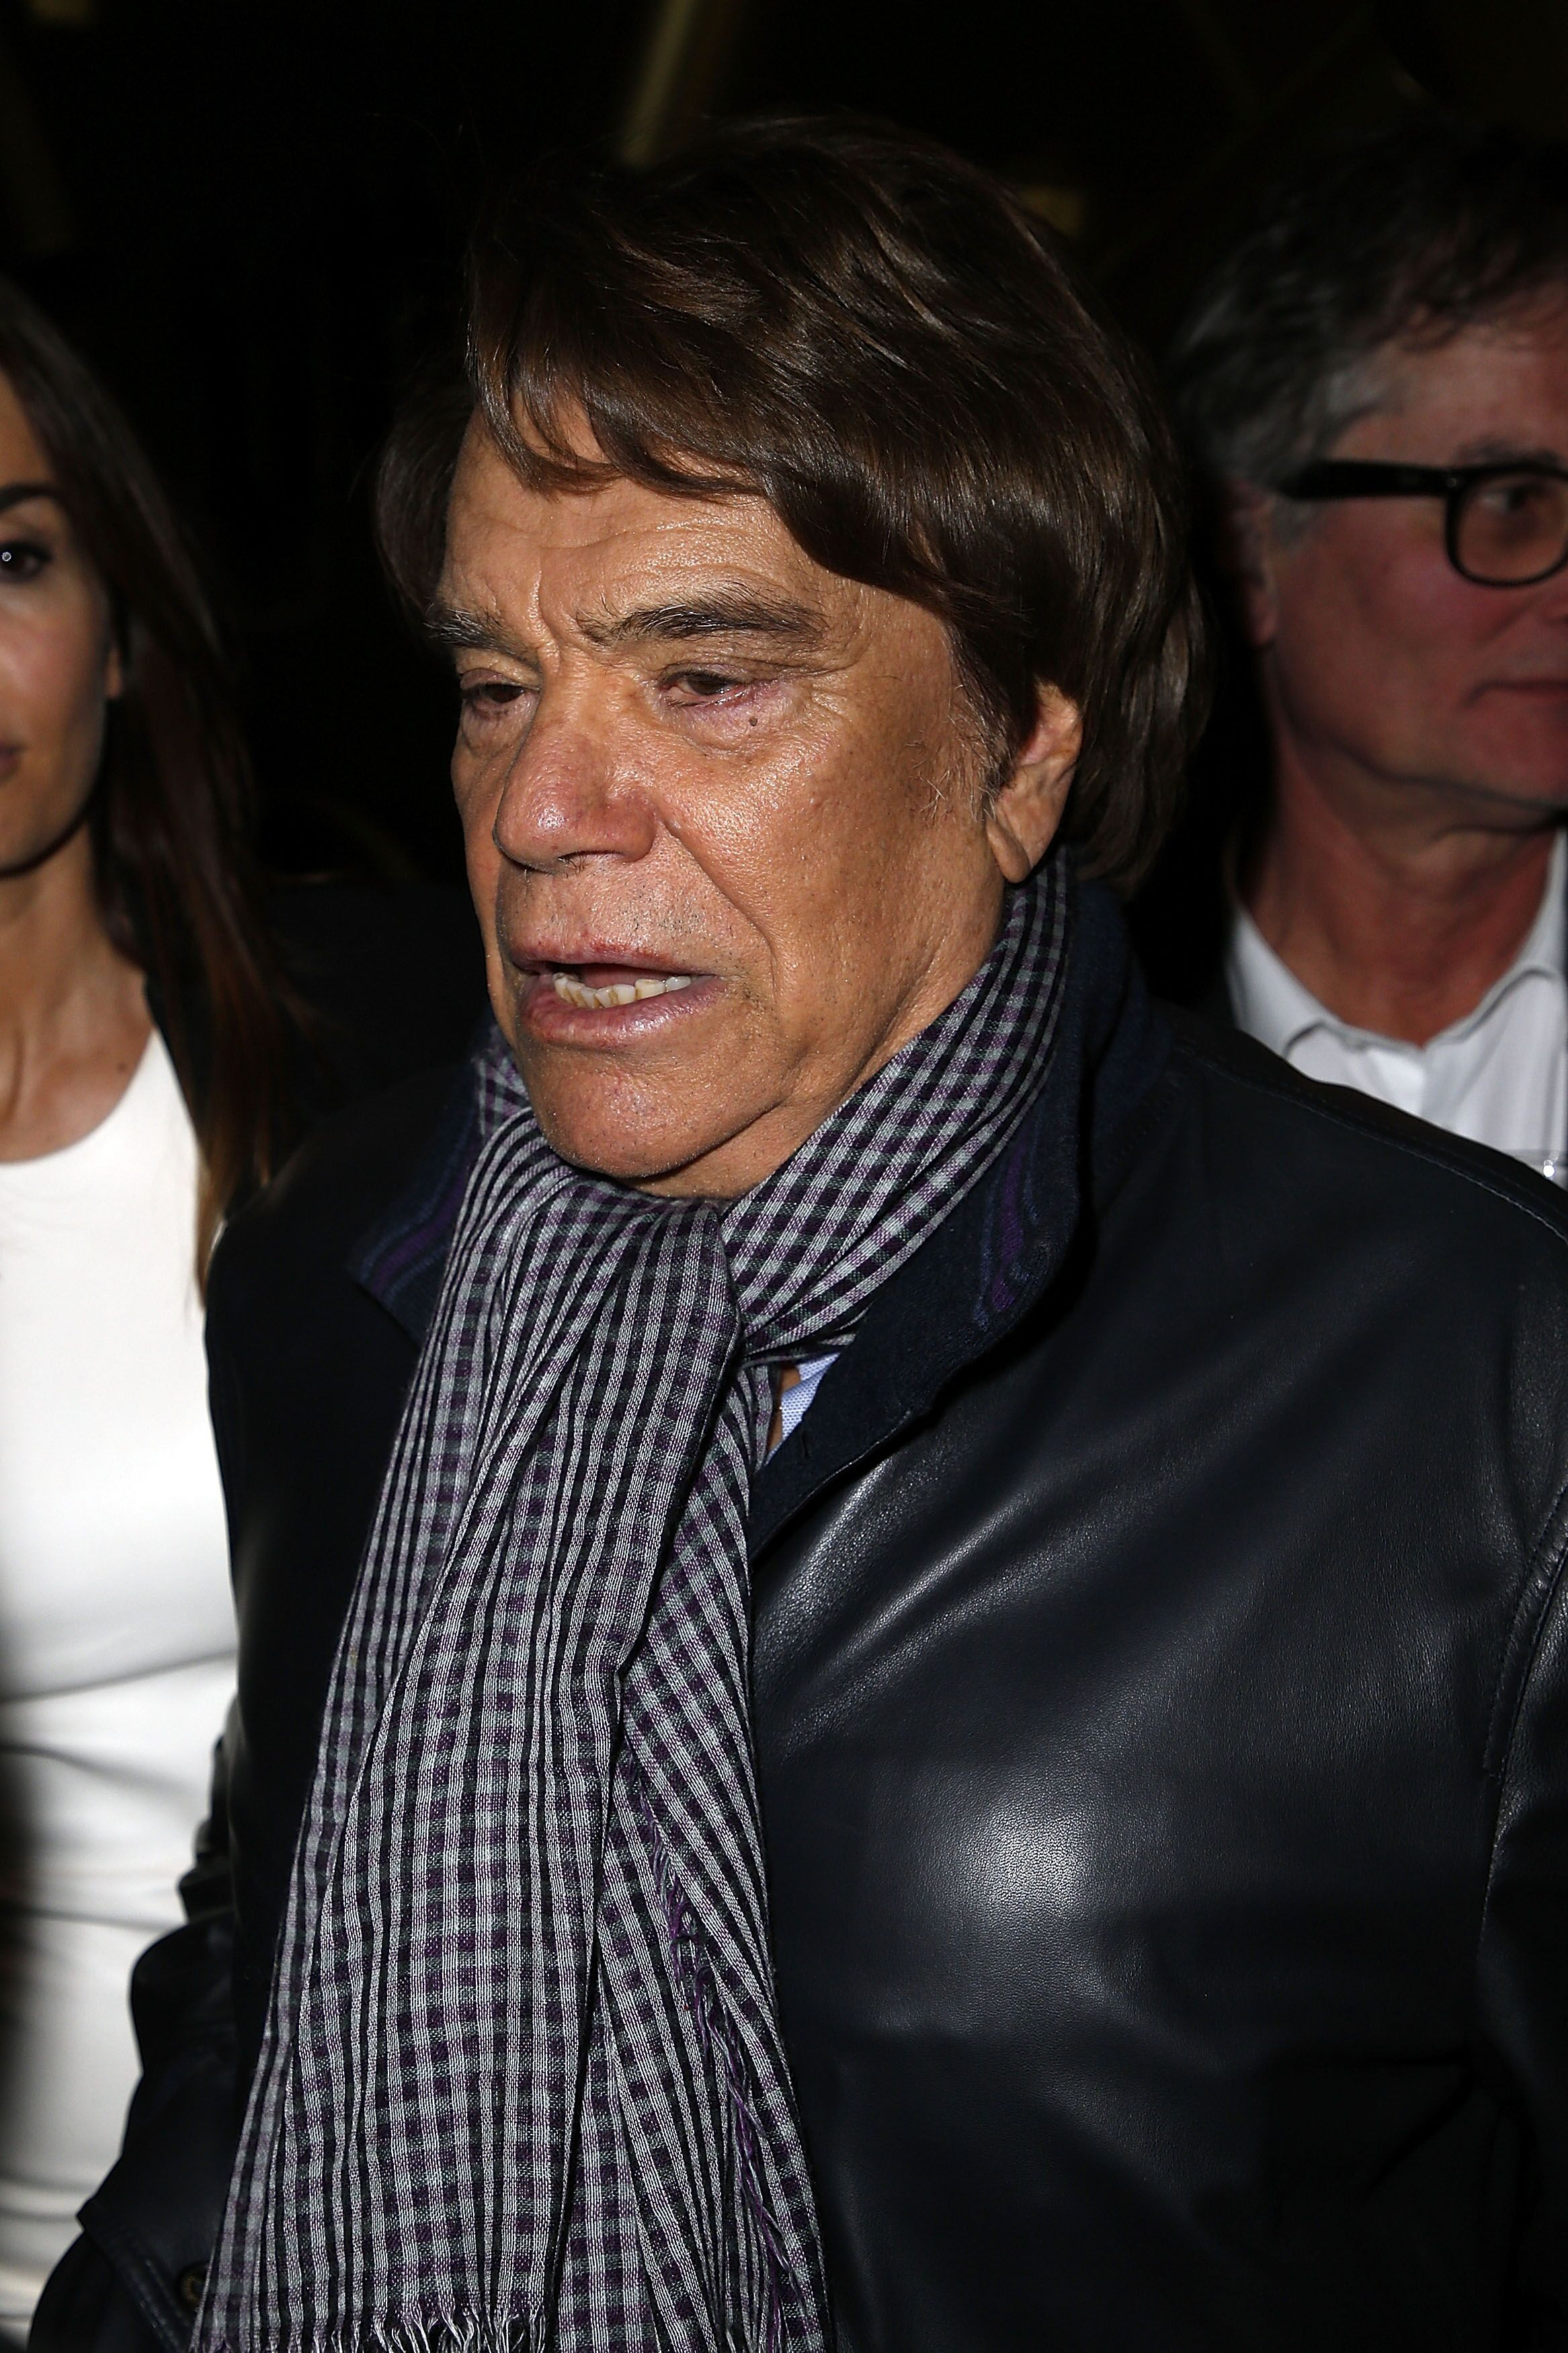 Bernard Tapie avec un foulard carreau | Photo : Getty Images